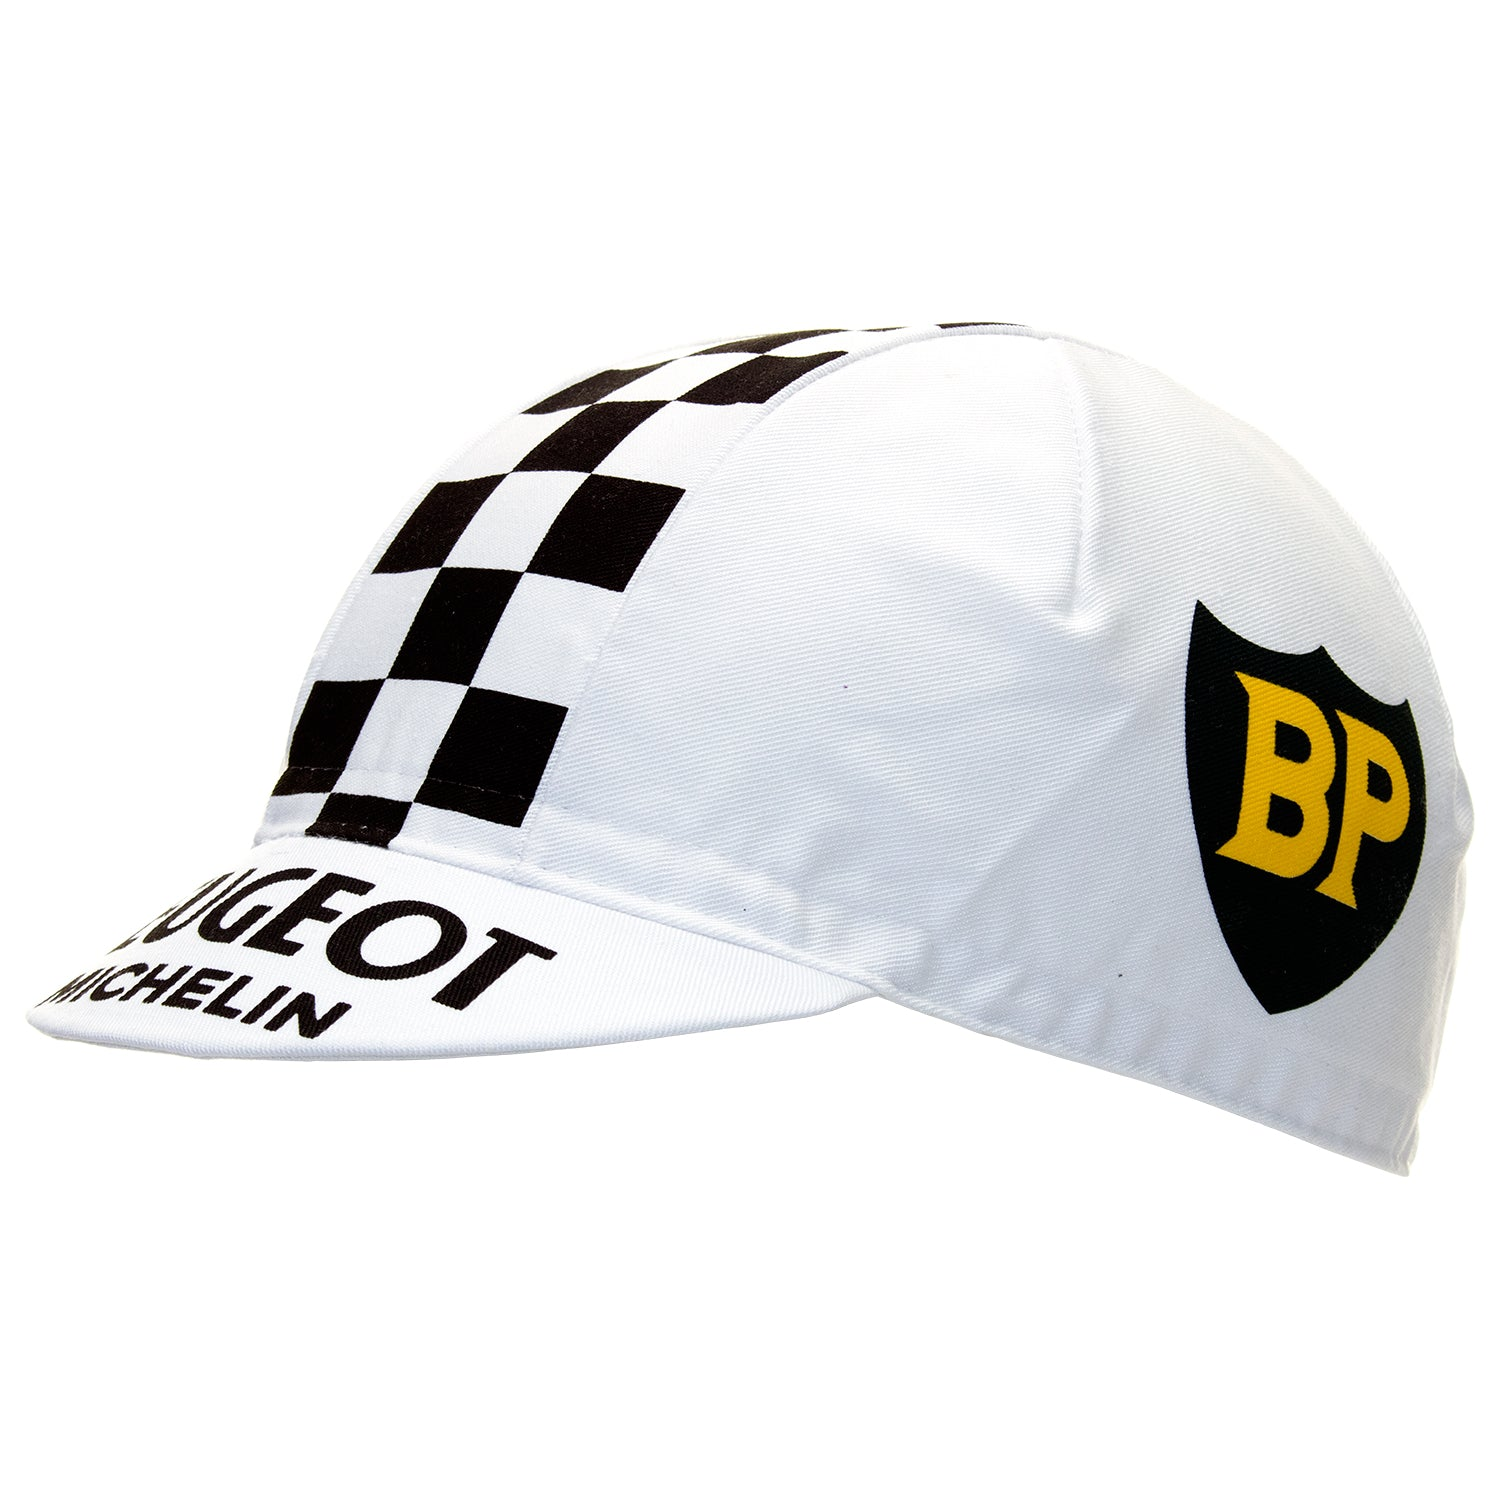 Peugeot BP Retro White Cotton Cycling Cap